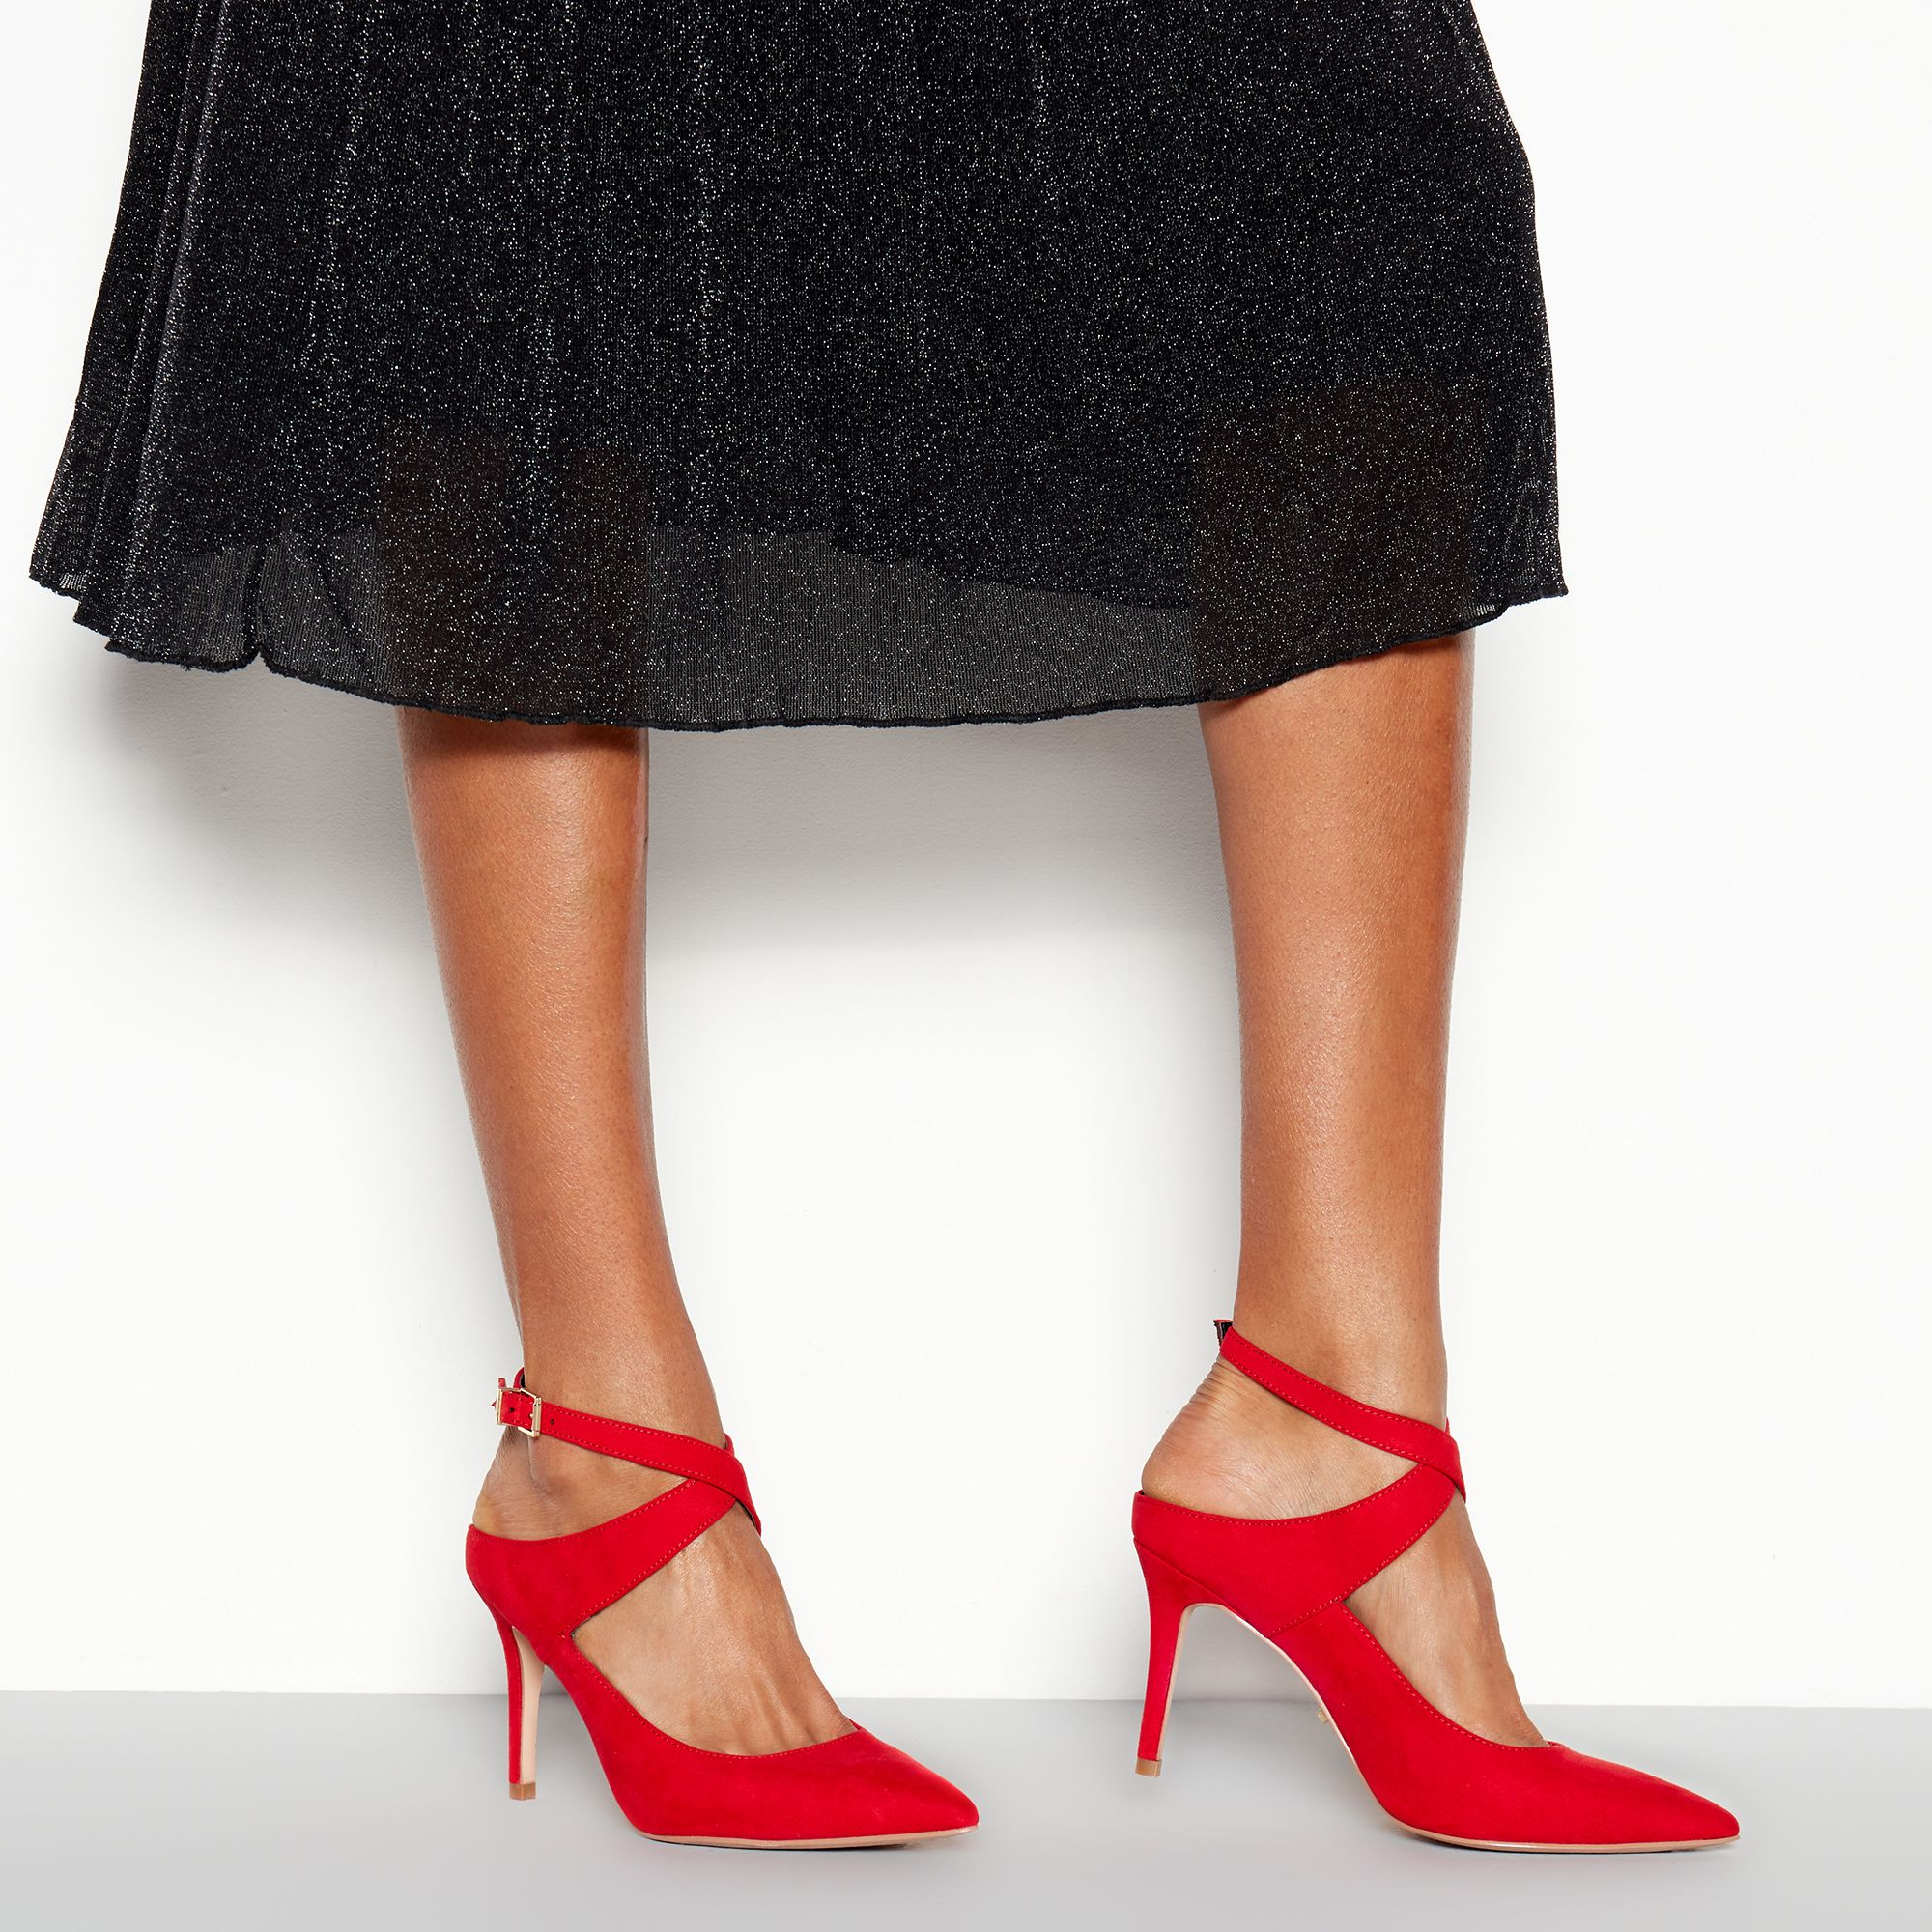 9bc49ab7bba3 Details about Faith Womens Red Suede  Cross  Stiletto Heel Shoes